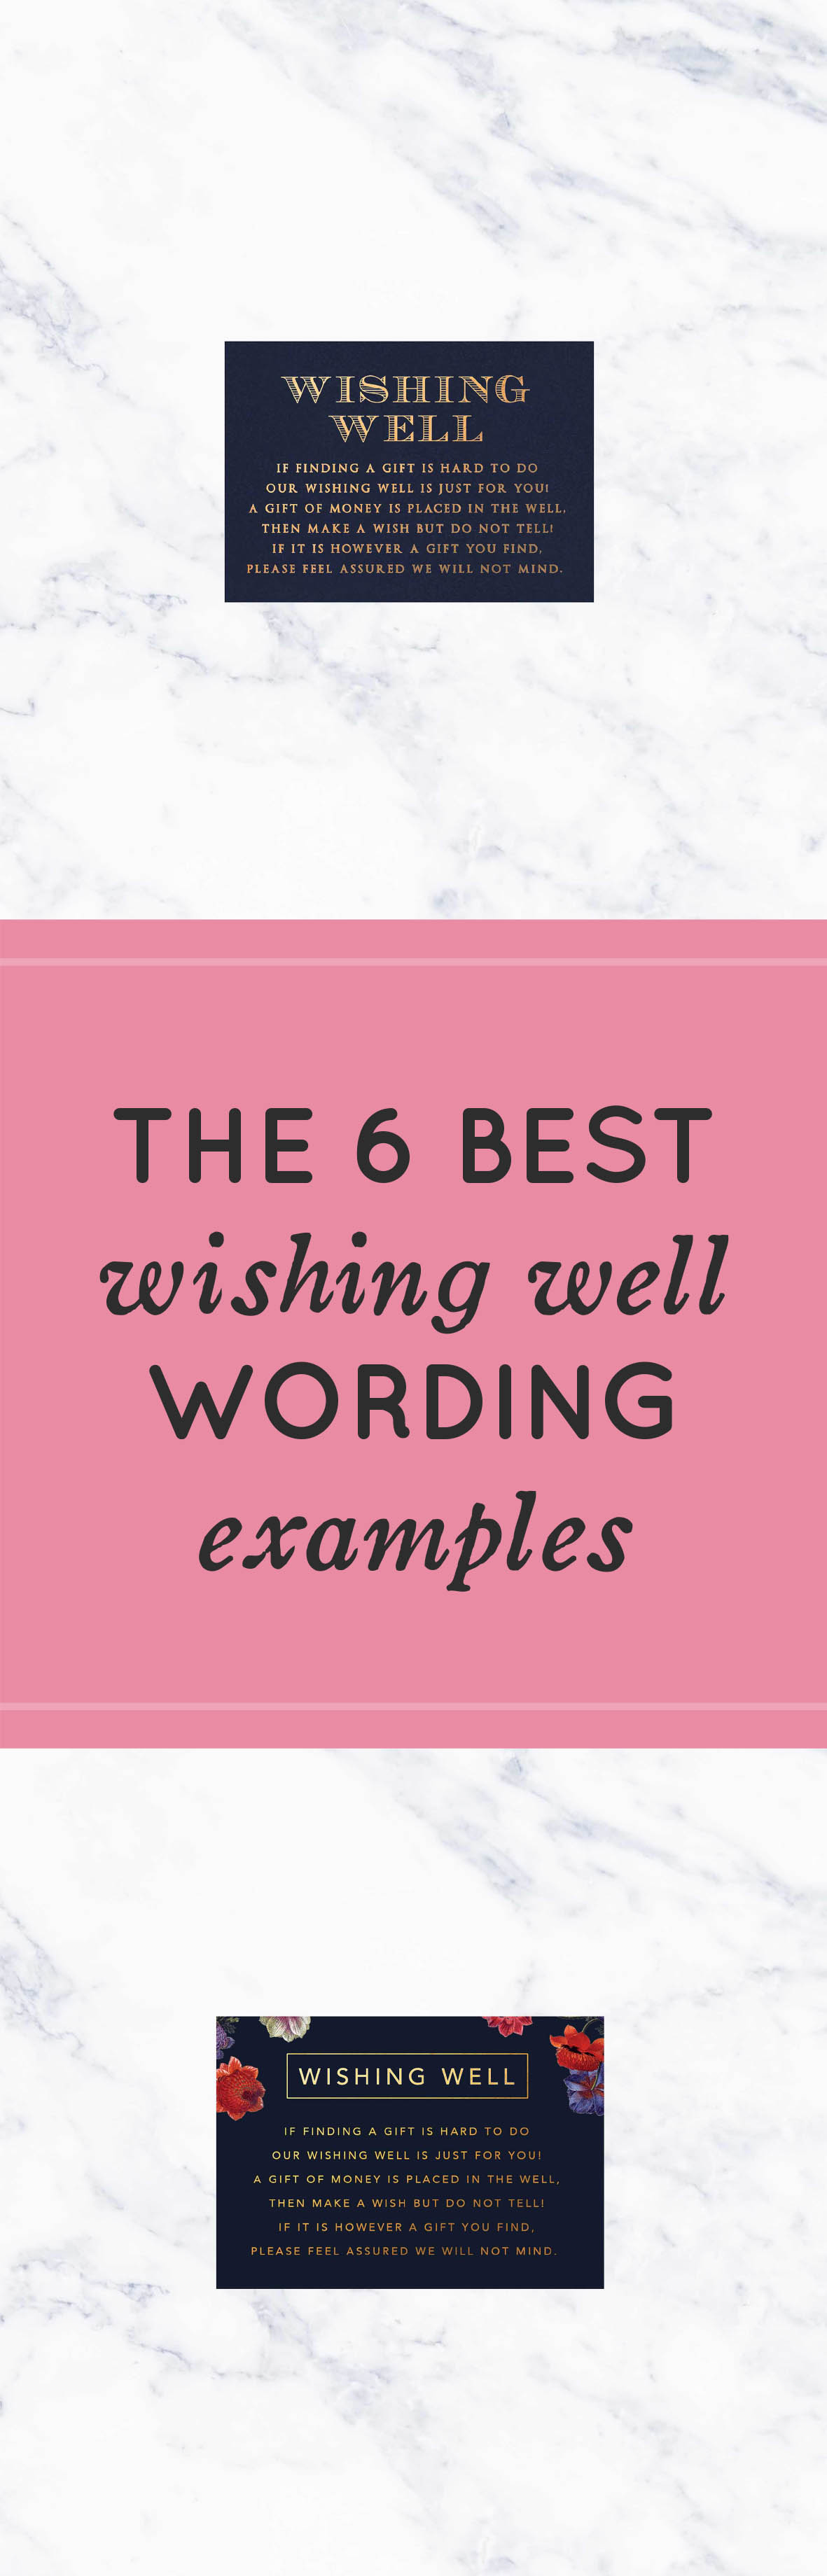 The 6 Best Wishing Well Wording Examples